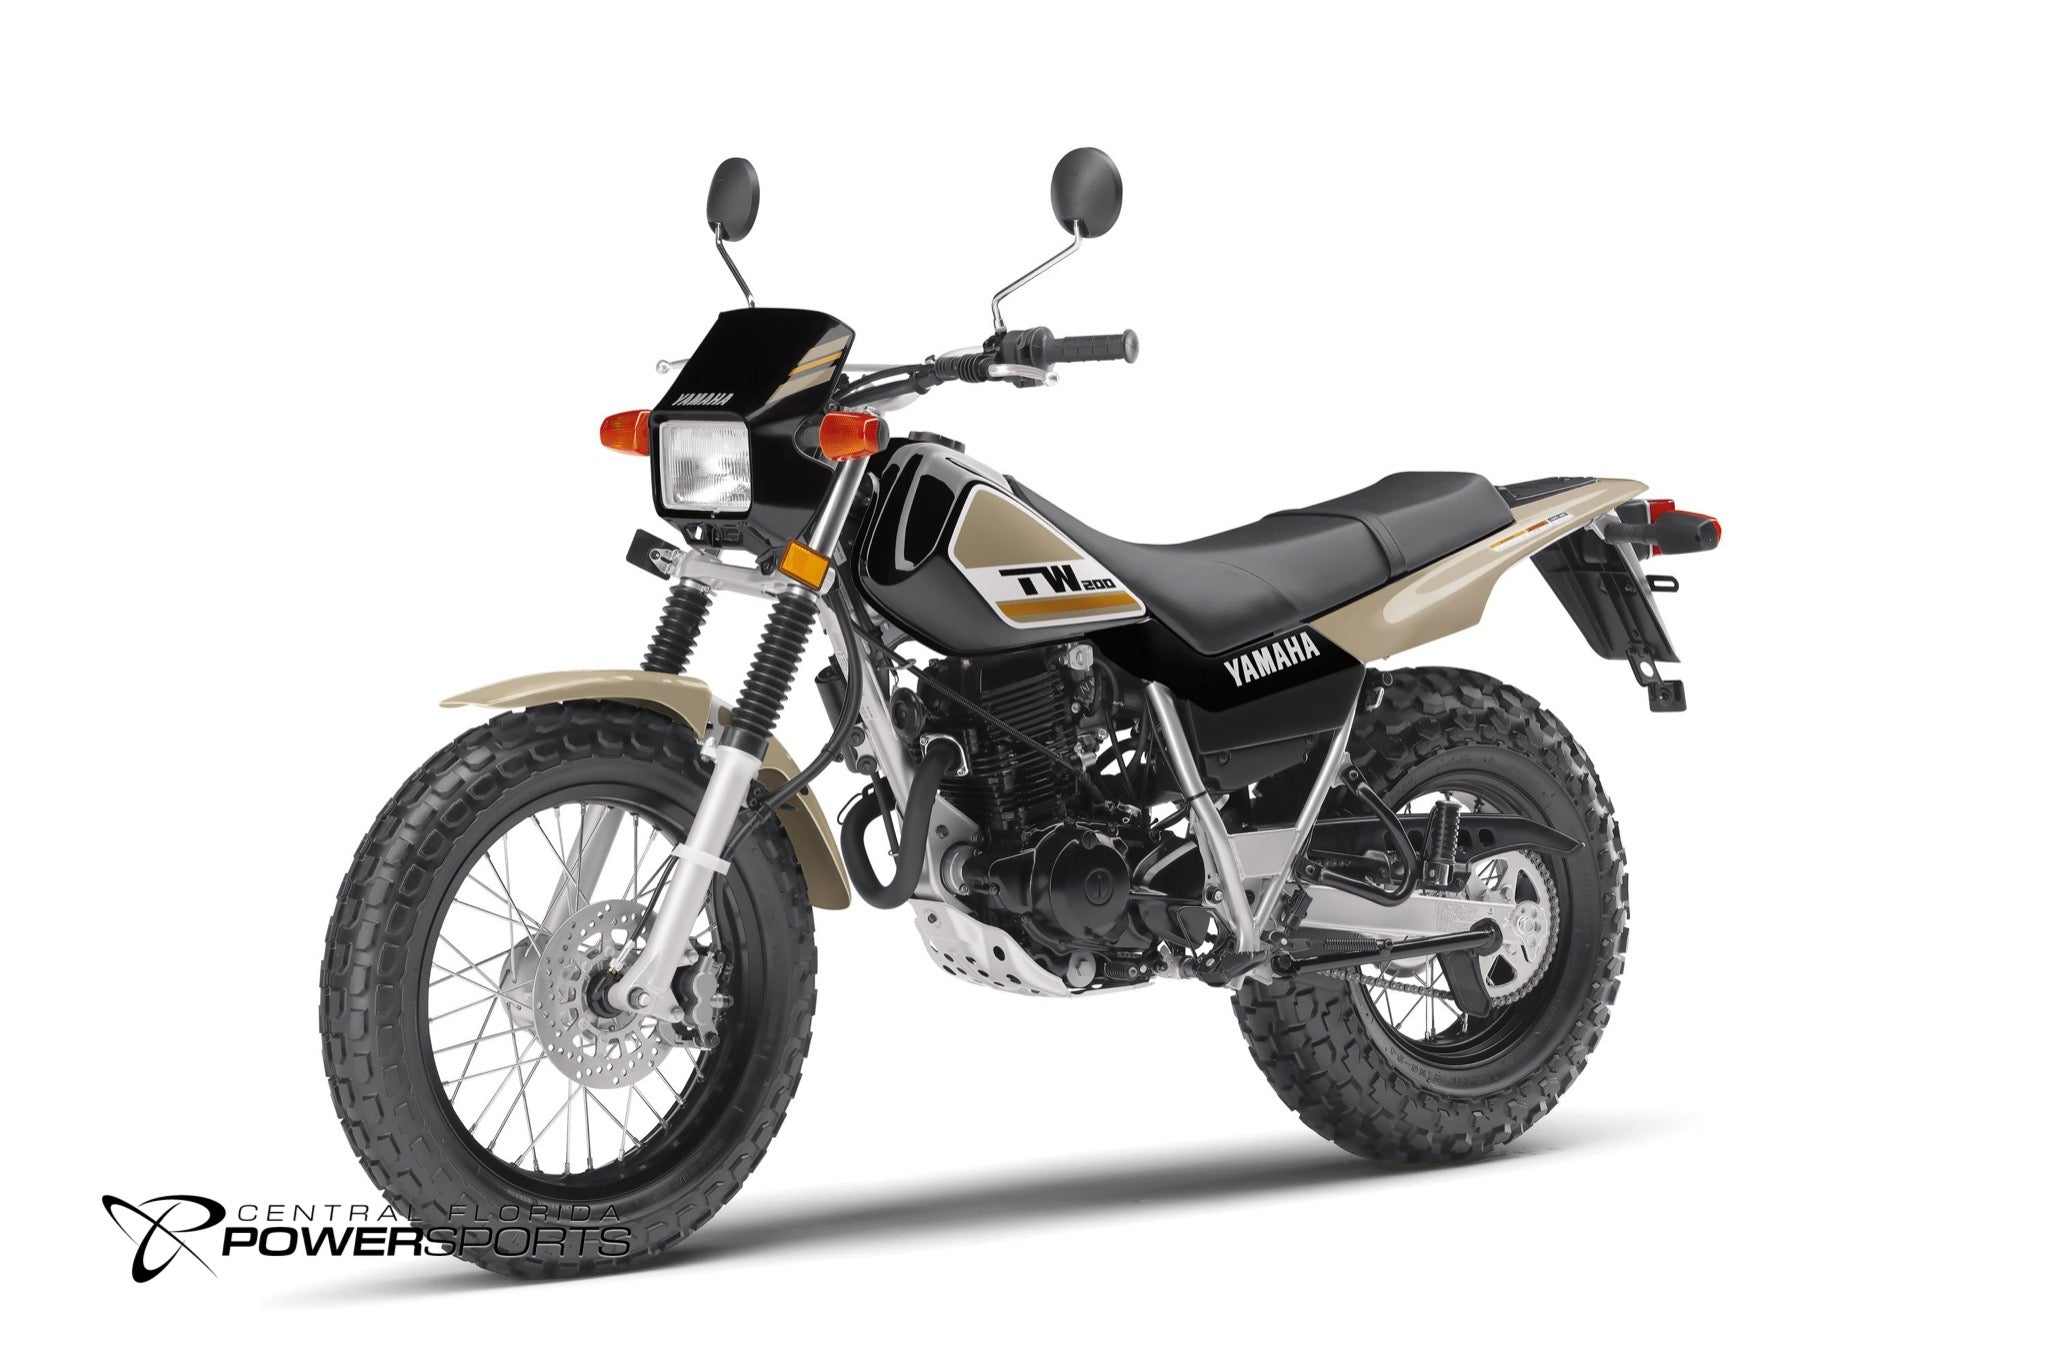 2018 Yamaha TW200 Dual Sport Motorcycle For Sale - Kissimmee Dealer ...